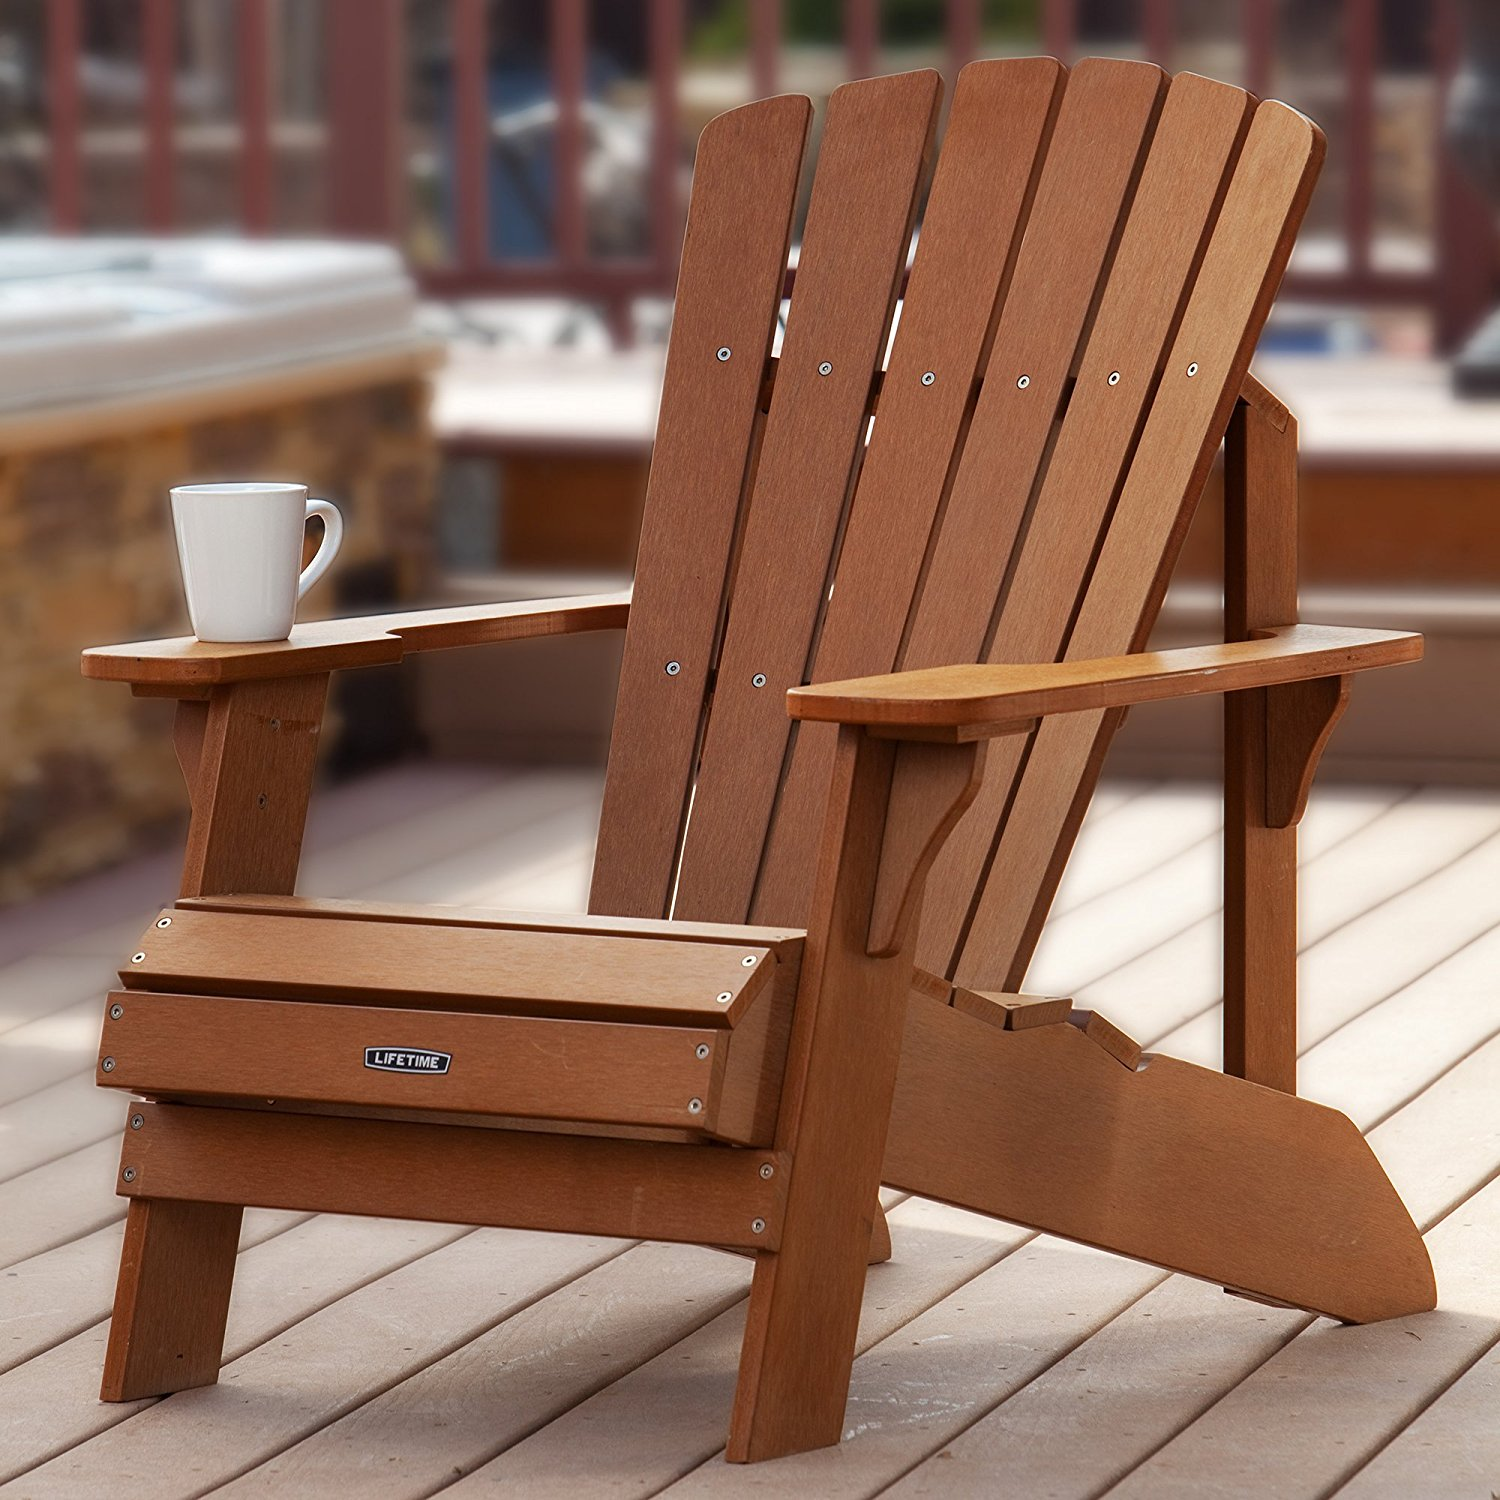 poly resin adirondack chairs reviews and buyer 39 s guide outsidemodern. Black Bedroom Furniture Sets. Home Design Ideas